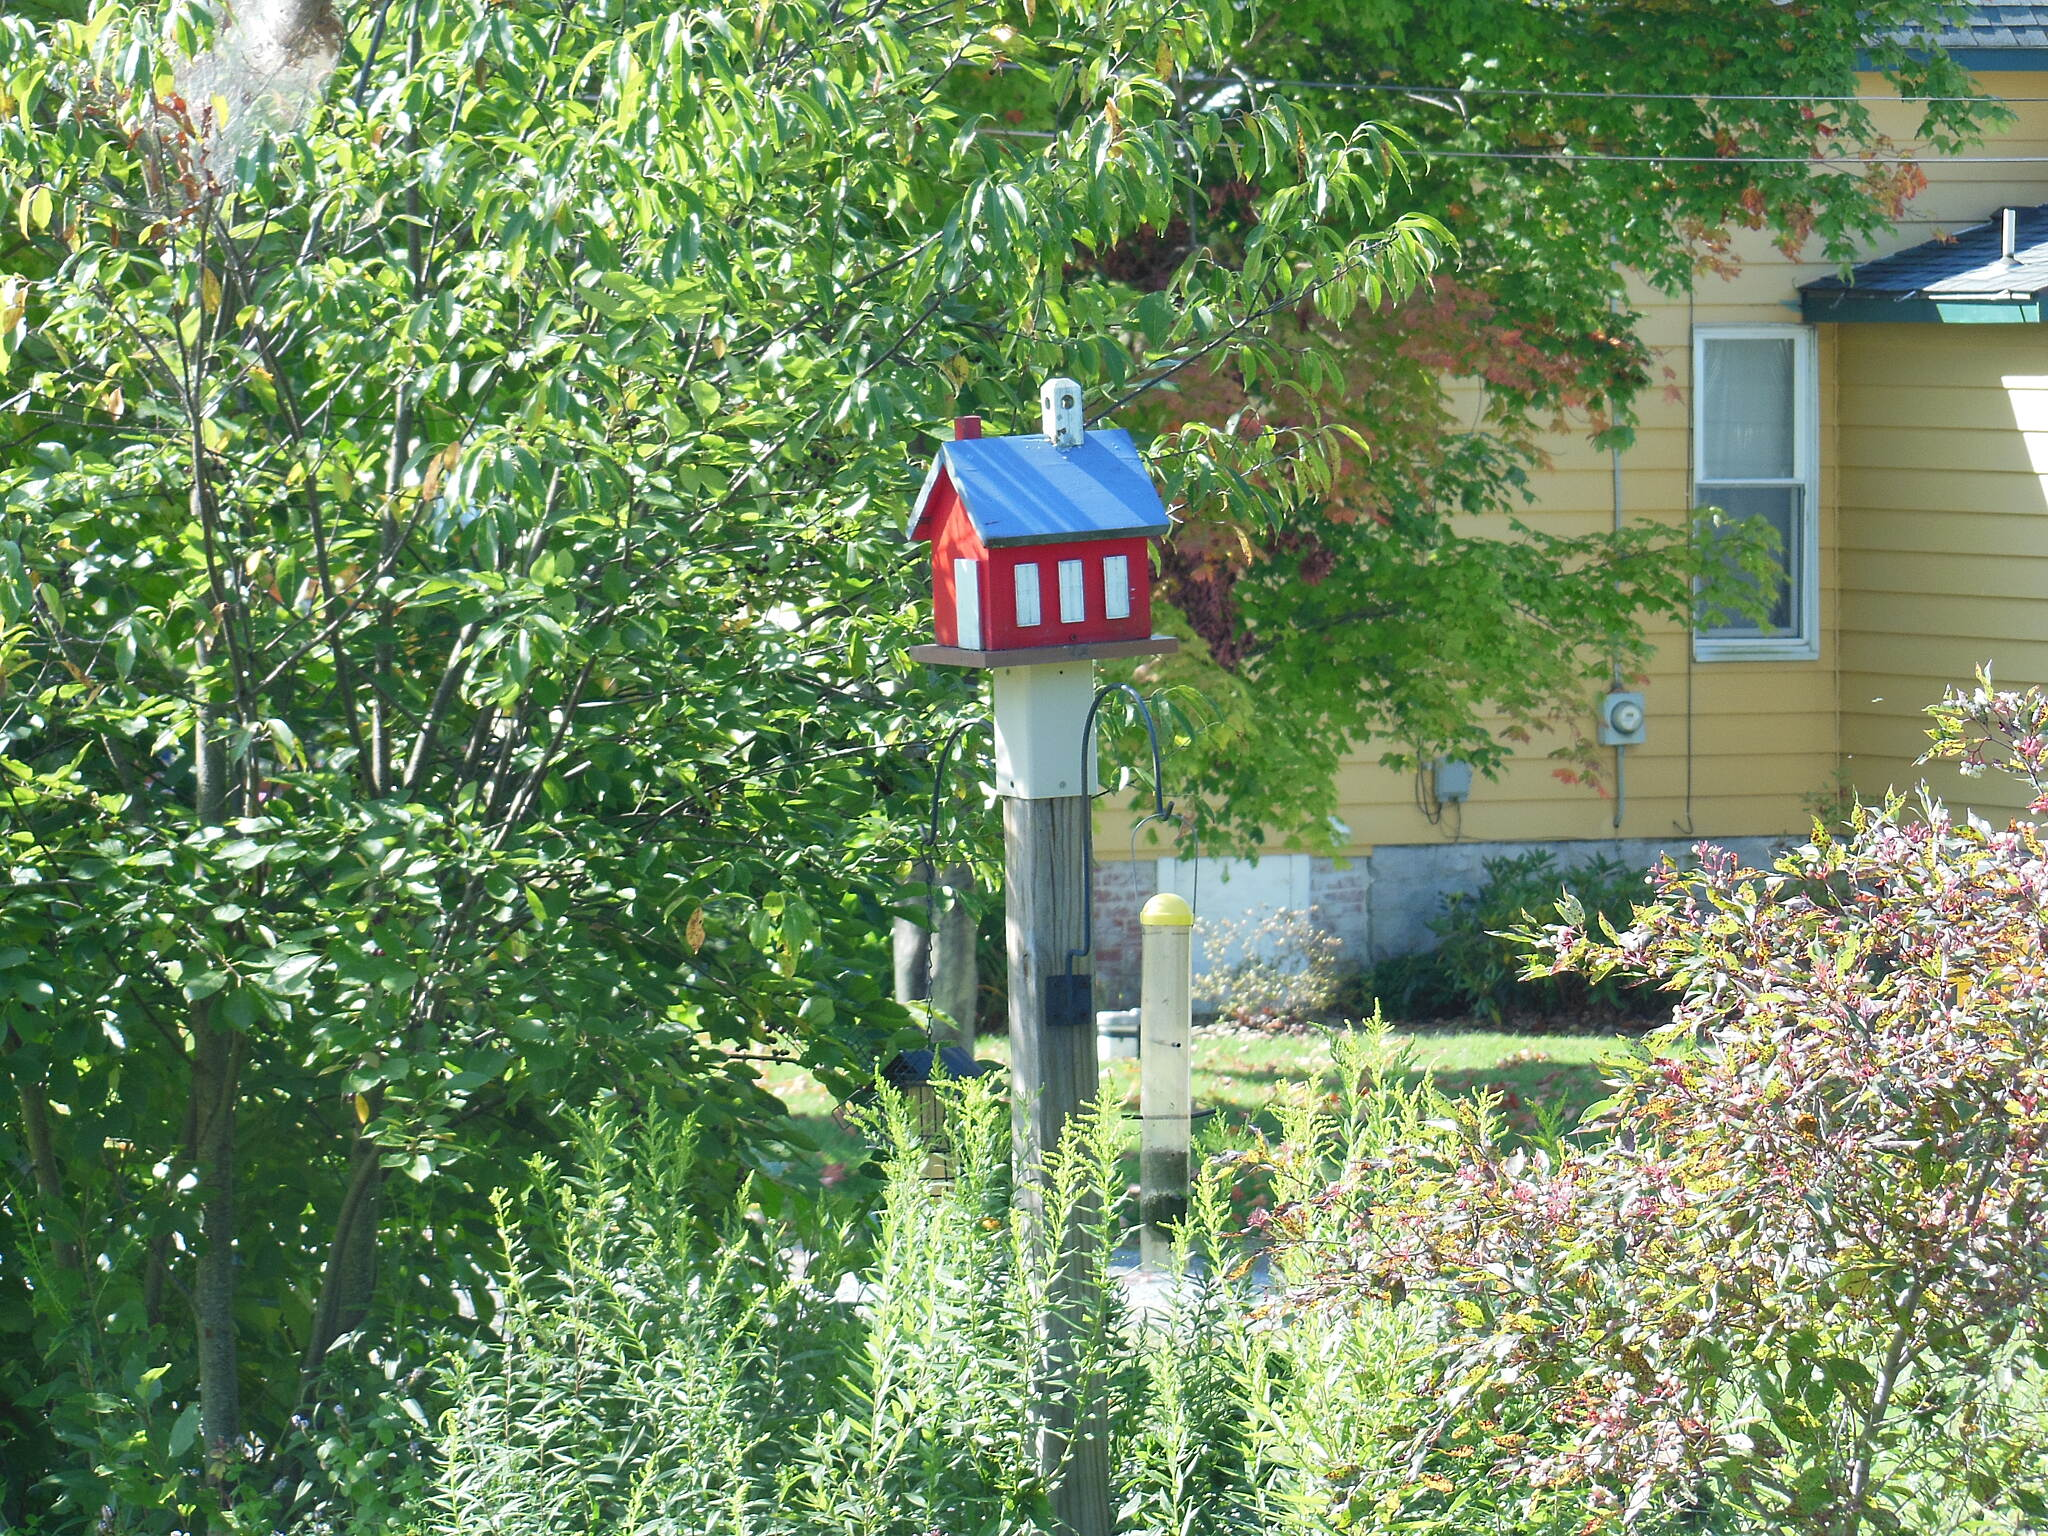 Butler-Freeport Community Trail Cool bird house.